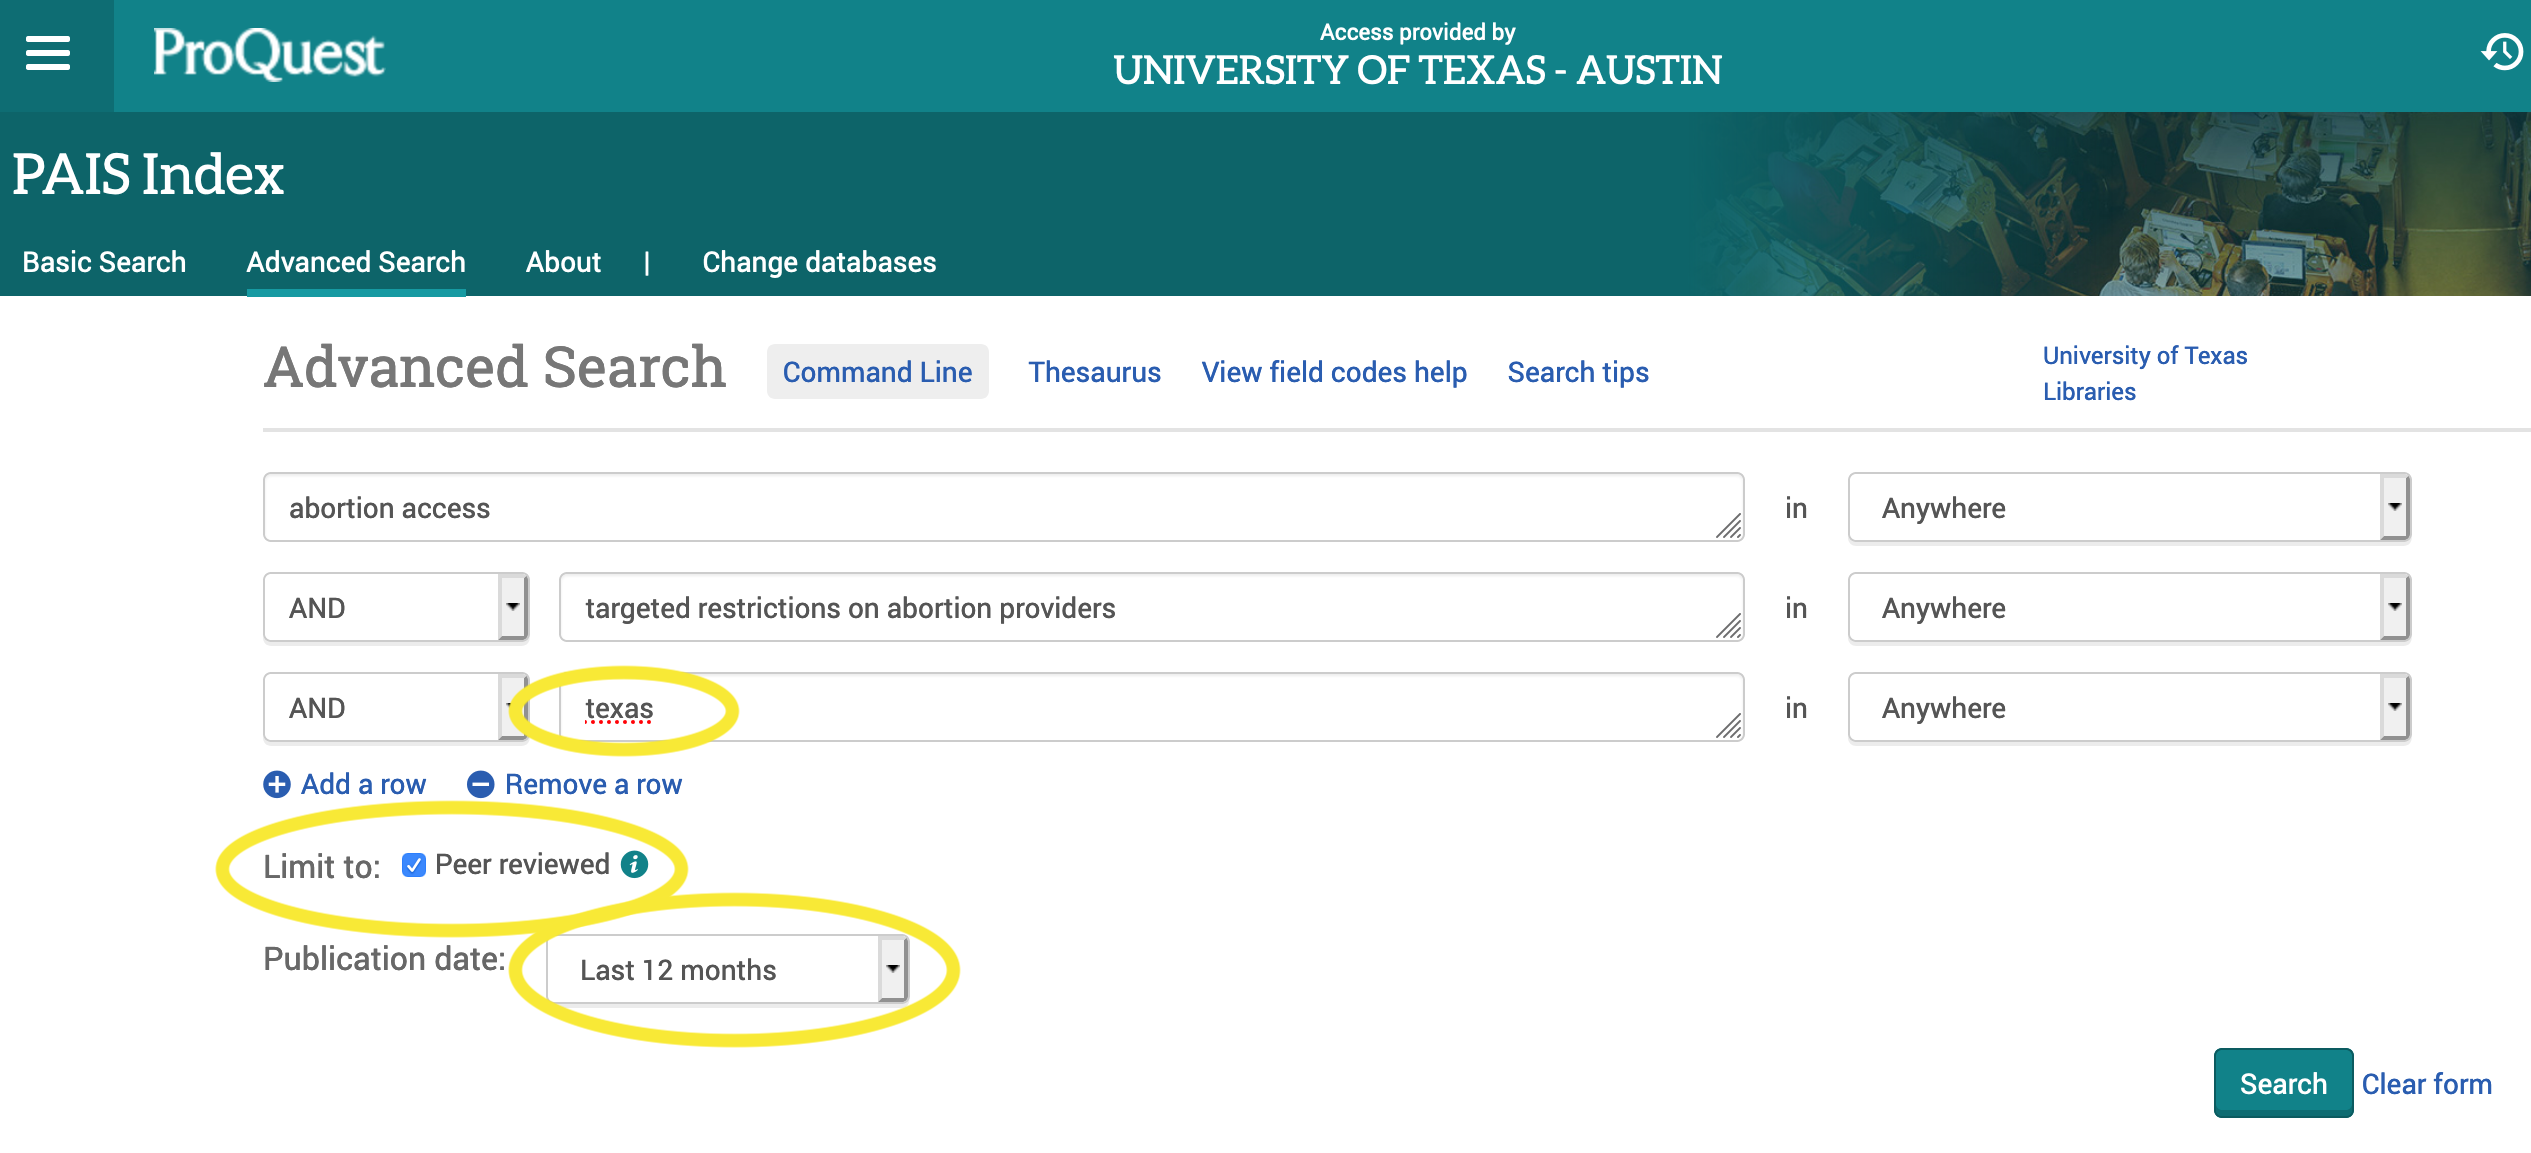 search in pais. abortion access and texas and targeted restrictions on abortion providers limited to last 12 months and to peer reviewed.